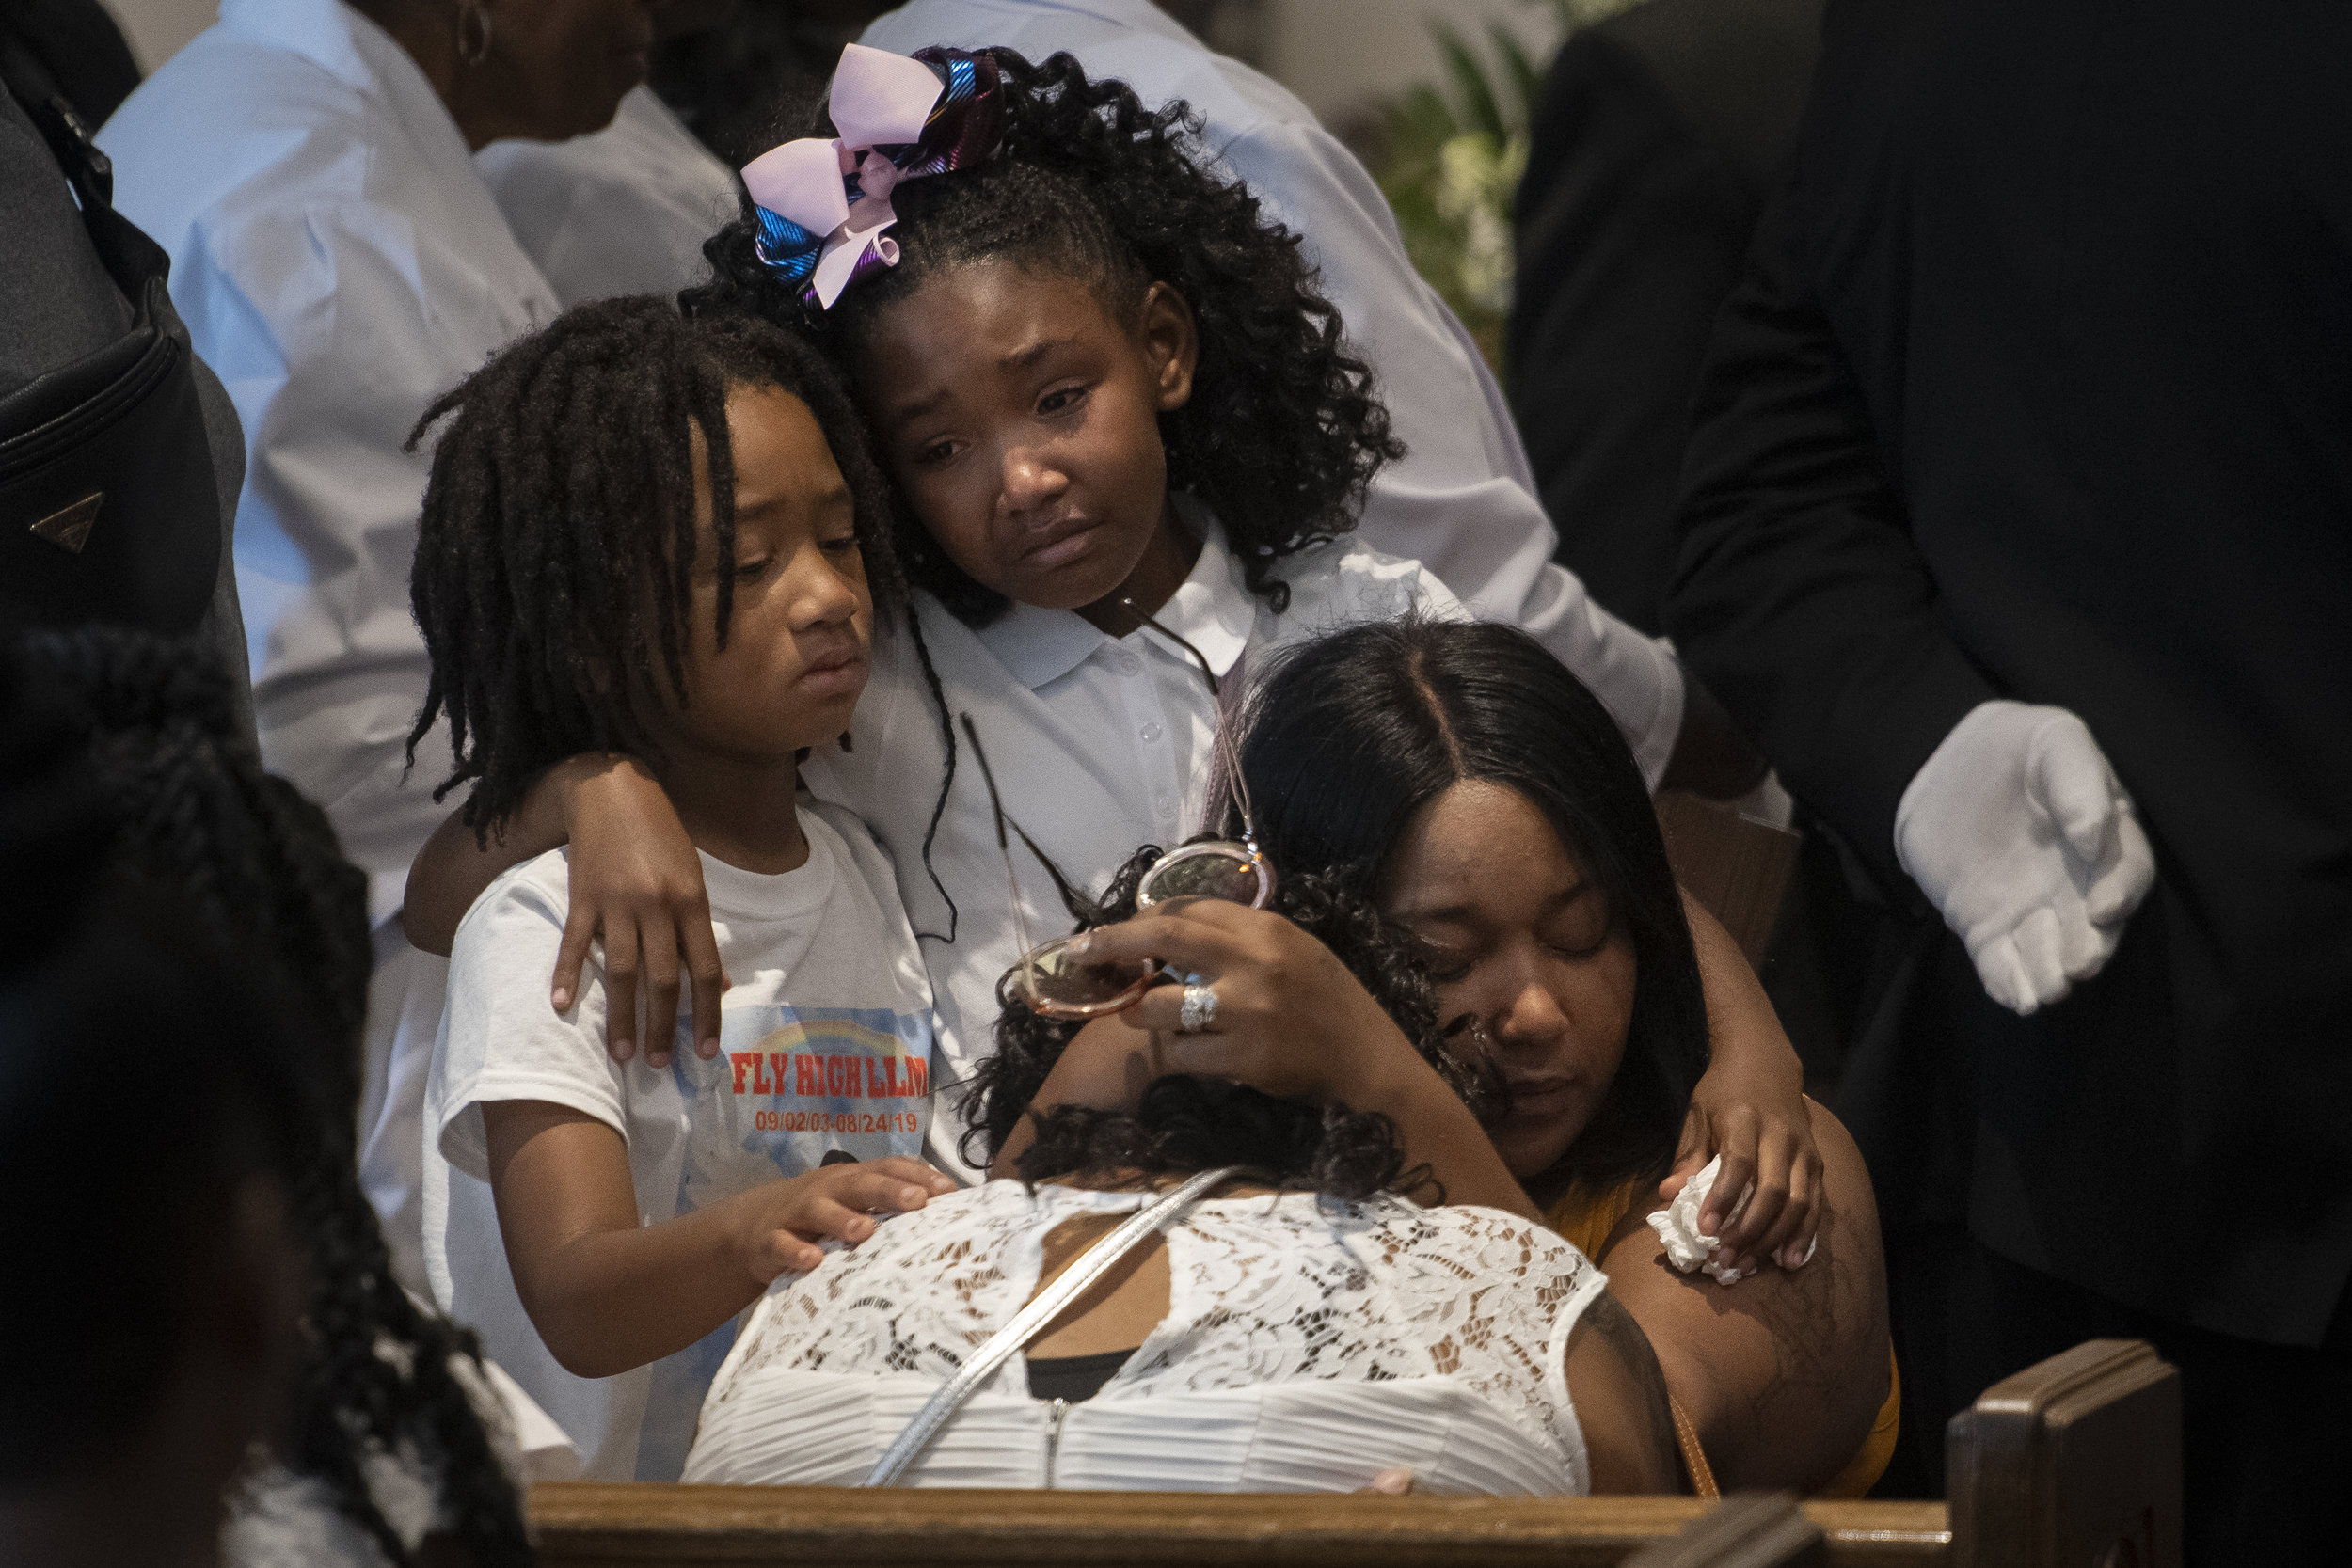 """Monday was 16 years since the birth of Madison Robinson; Tuesday was her funeral. Robinson died after being shot Aug. 24 on the front porch of her Cape Girardeau home. Scores turned out for Robinson's visitation and funeral Sept. 3 at Mercy Seat Missionary Baptist Church in Charleston. """"I'll have people remember this day, today, that a 15-year-old girl is dead in our community,"""" Robinson's cousin Alex Gilbert said. """"If you want to remember her, remember her as somebody that shouldn't have died because of the gun violence."""" Pictured from left: Sunnyboy Mims, 7, and Randi Jones, 9, cousins of Robinson; and Misty Robinson, aunt of Madison, mourn with Madison's mother Martez Johnson, with head bowed, during Madison's services. — Sept. 3, 2019, Charleston, Missouri."""